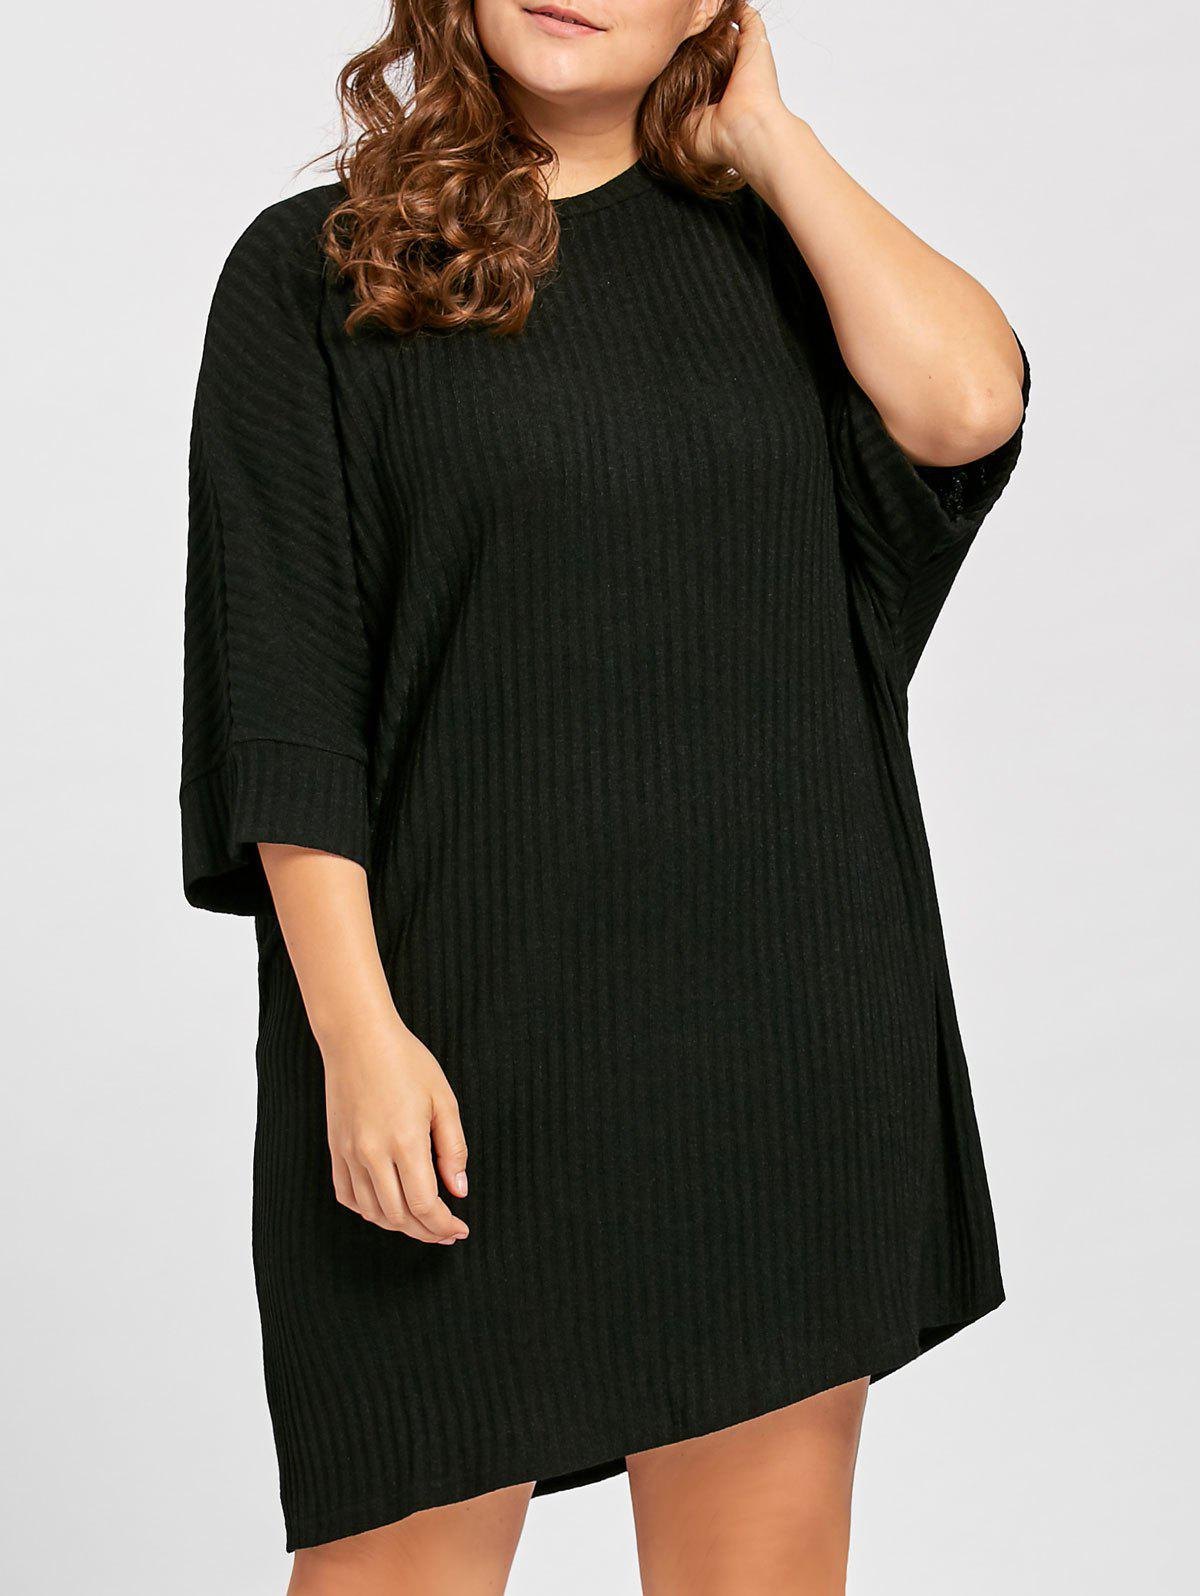 Plus Size Ribbed Knitted Tunic T shirt 227638703